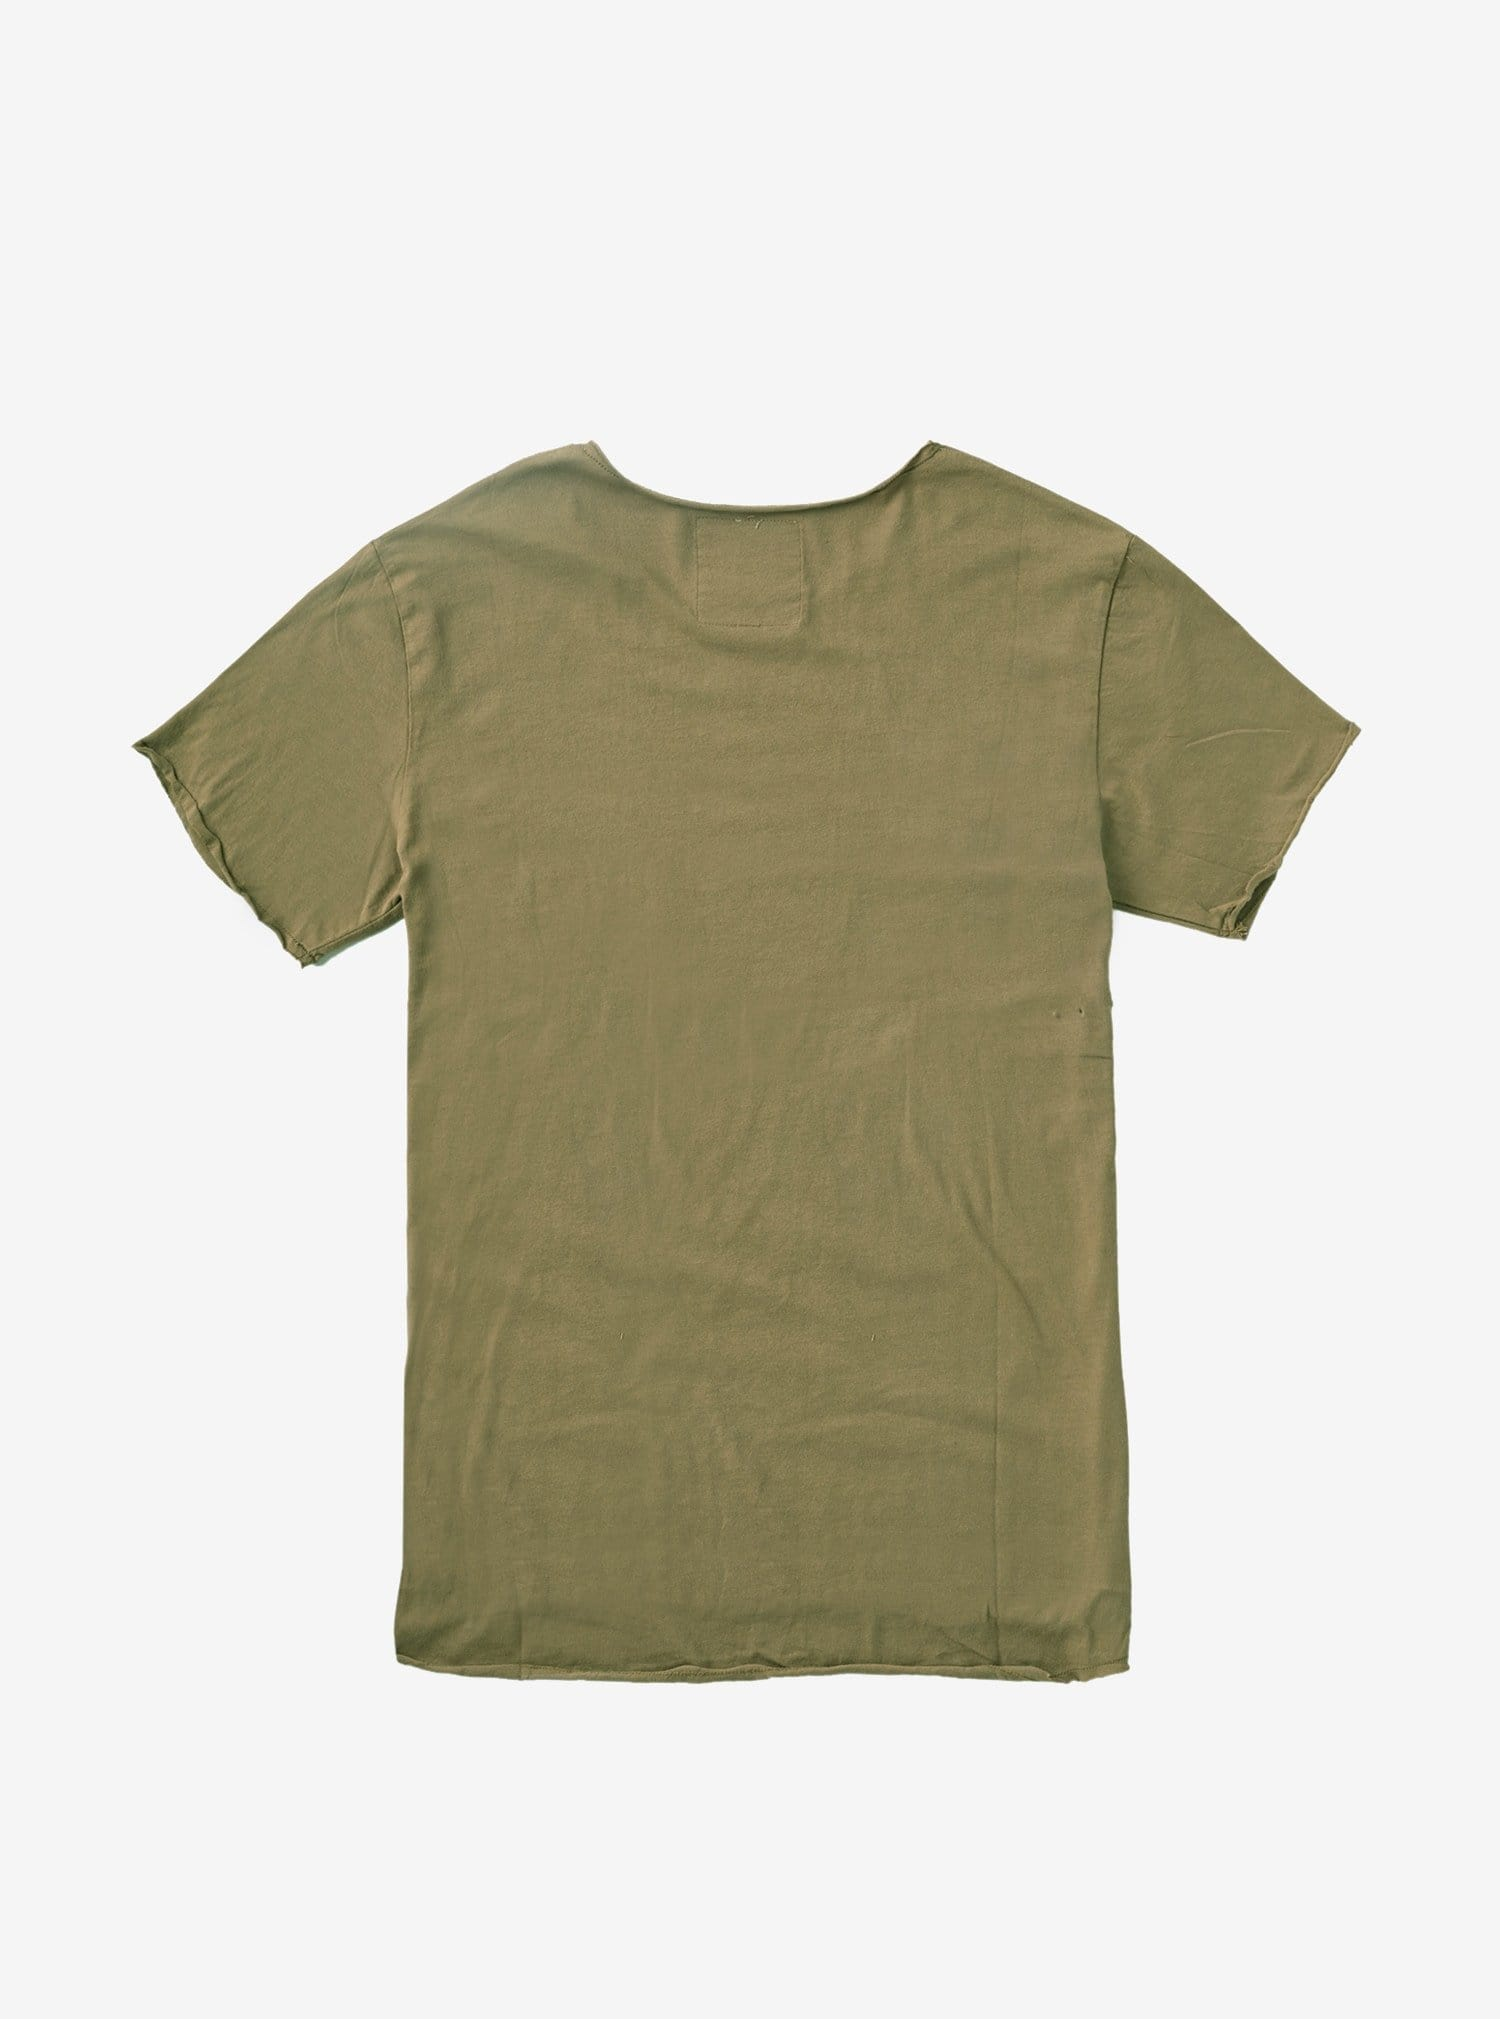 Basic Raw-Cut Short Sleeve Tee in Olive Army